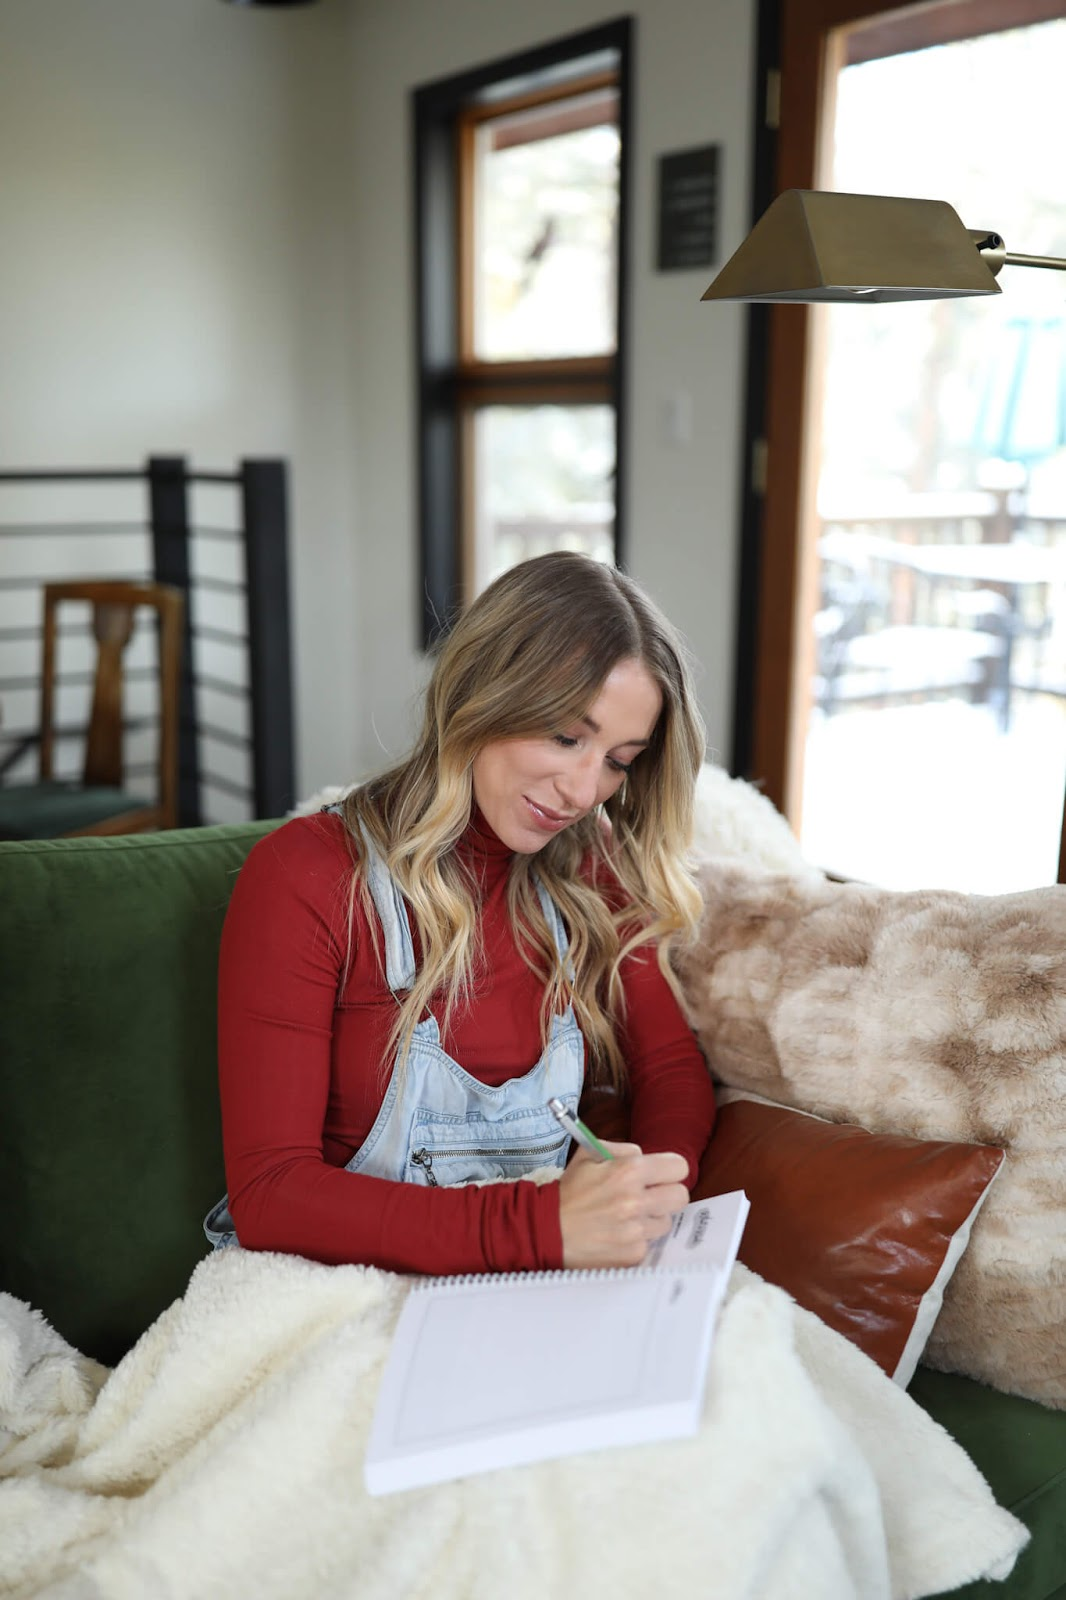 Woman writing in a journal on the couch